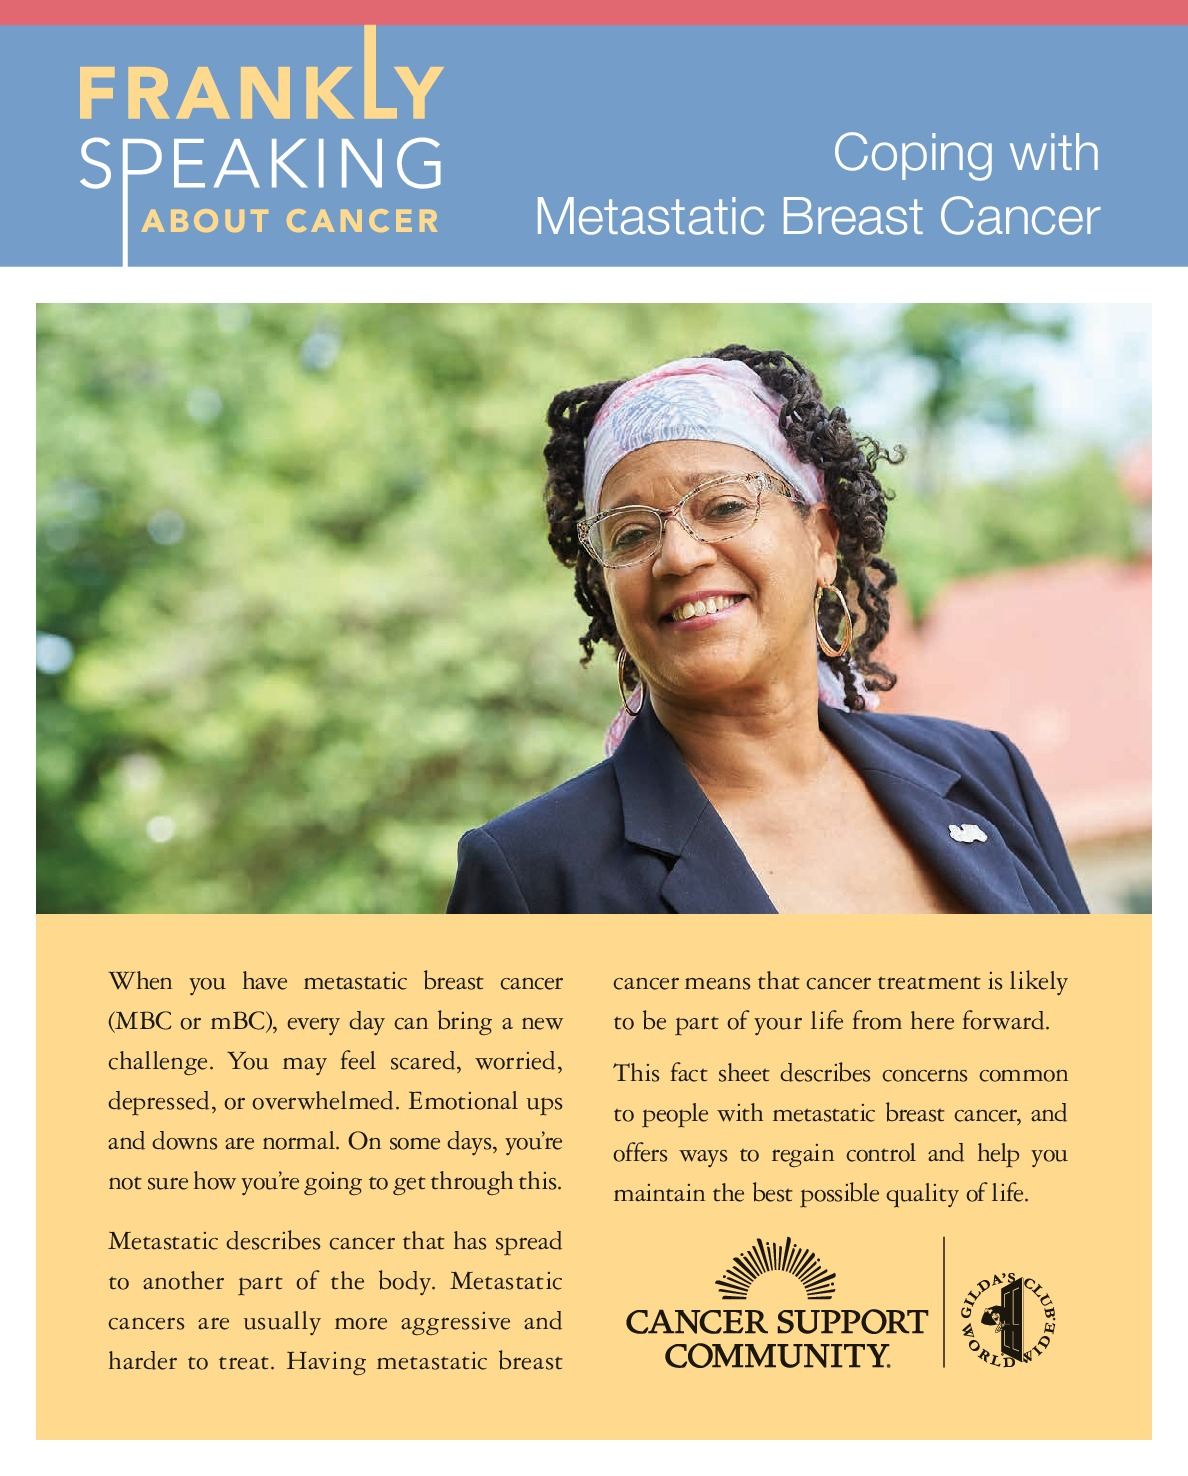 Coping with Metastatic Breast Cancer